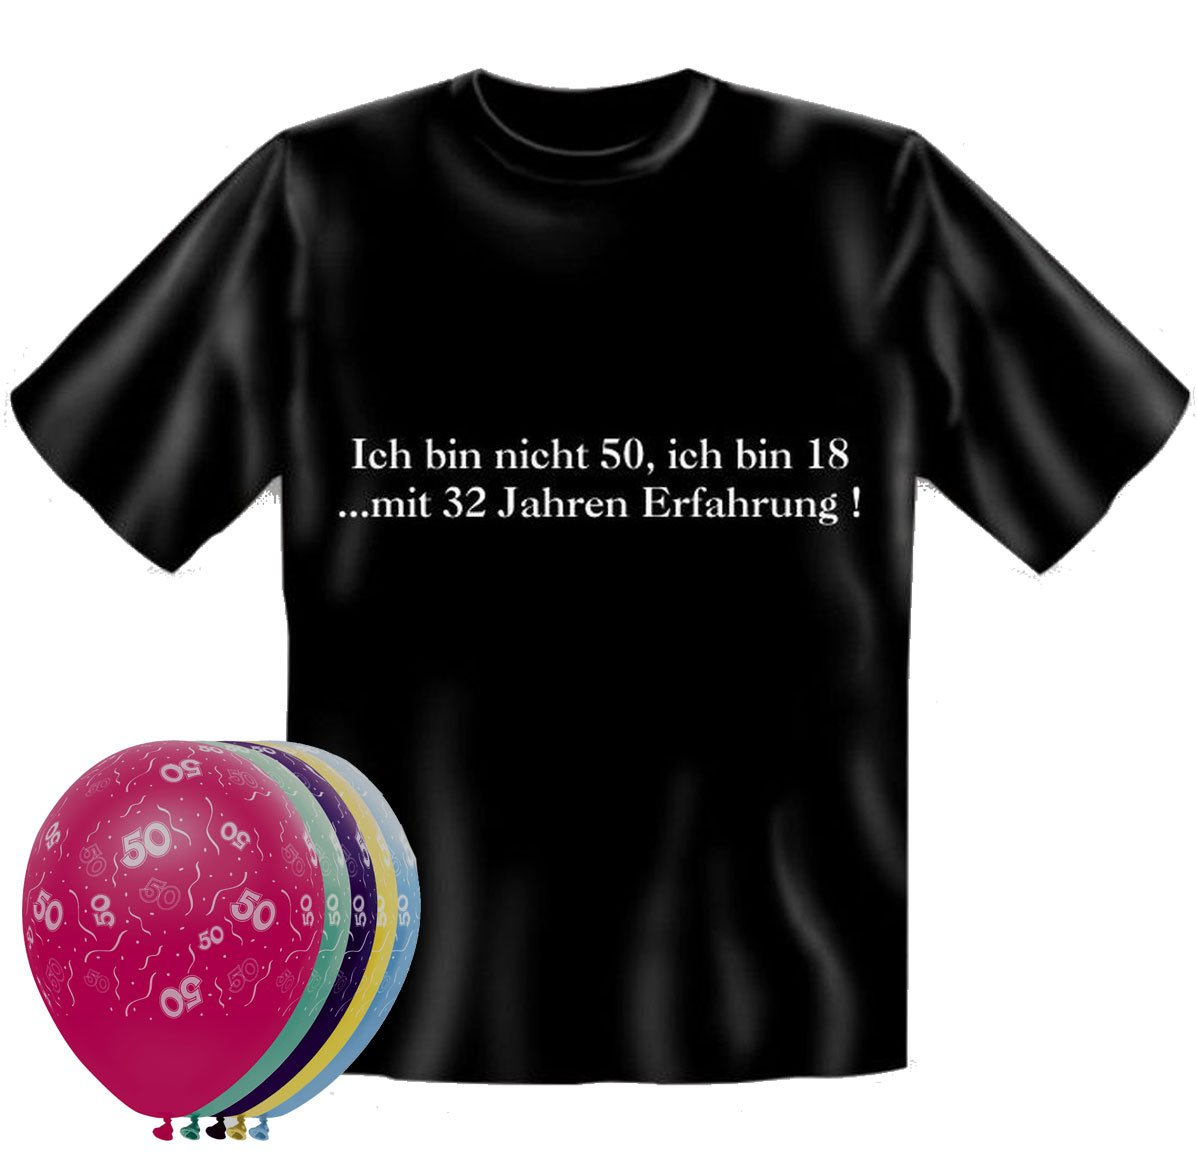 MakenGO & Co. KG Fun-Shirts-Geschenke-Textildruck Camiseta ...